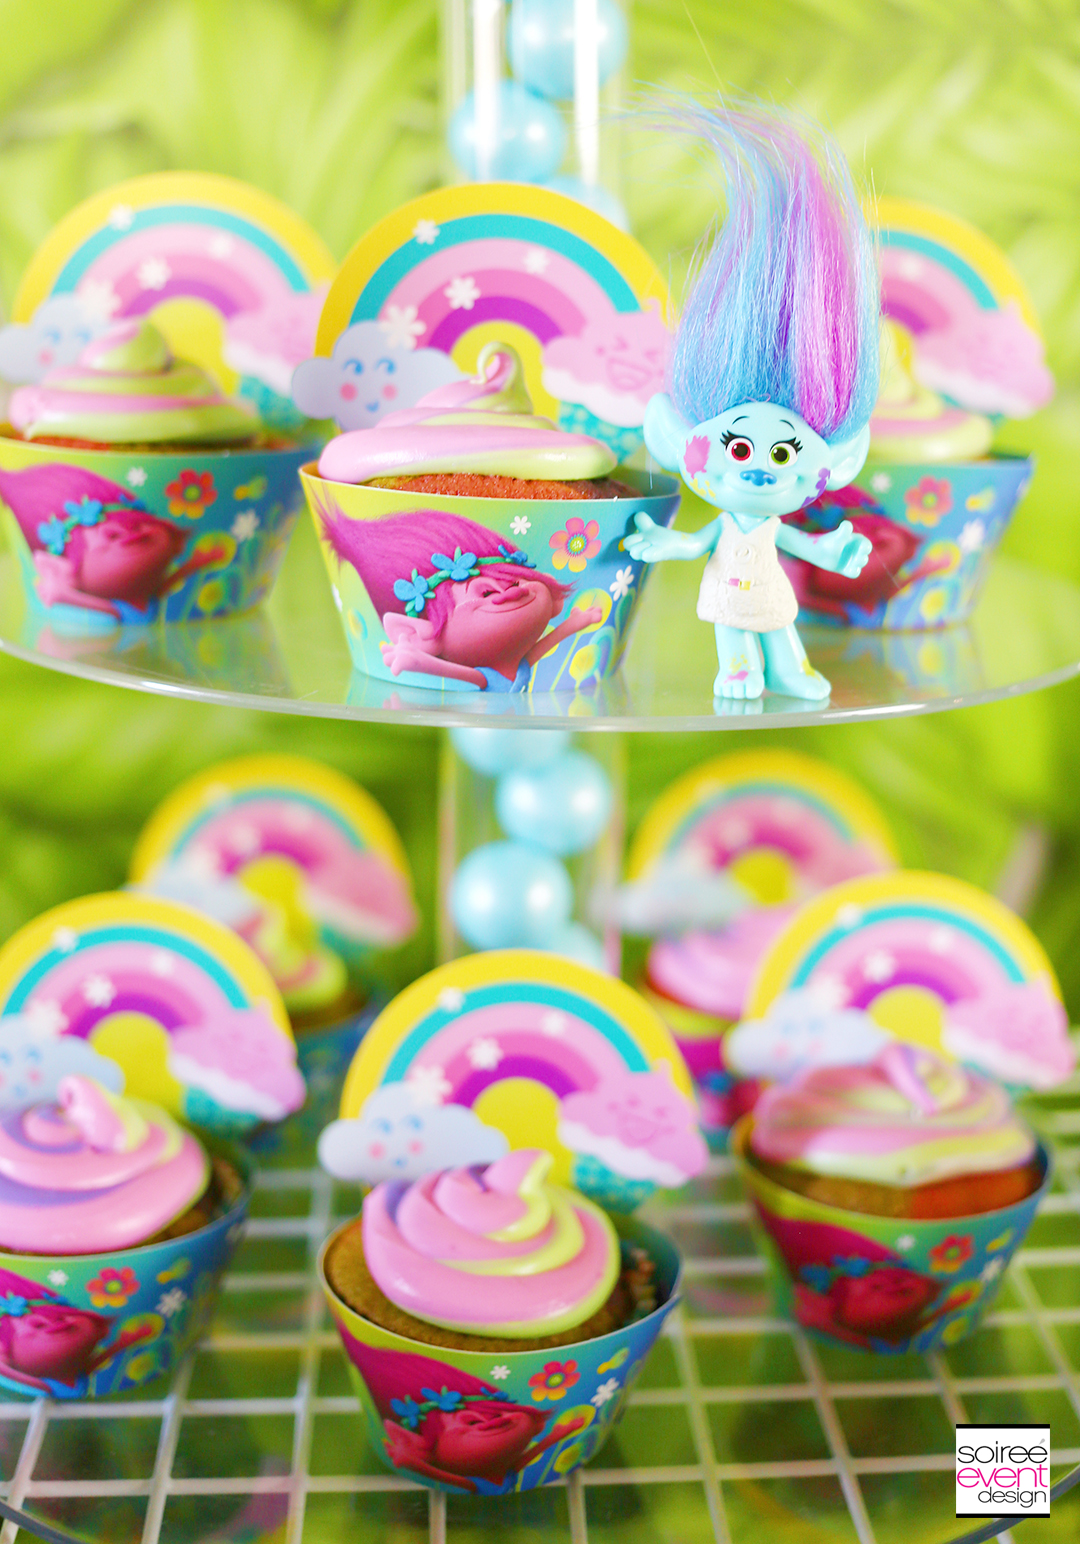 Trolls party ideas - Trolls Cupcakes